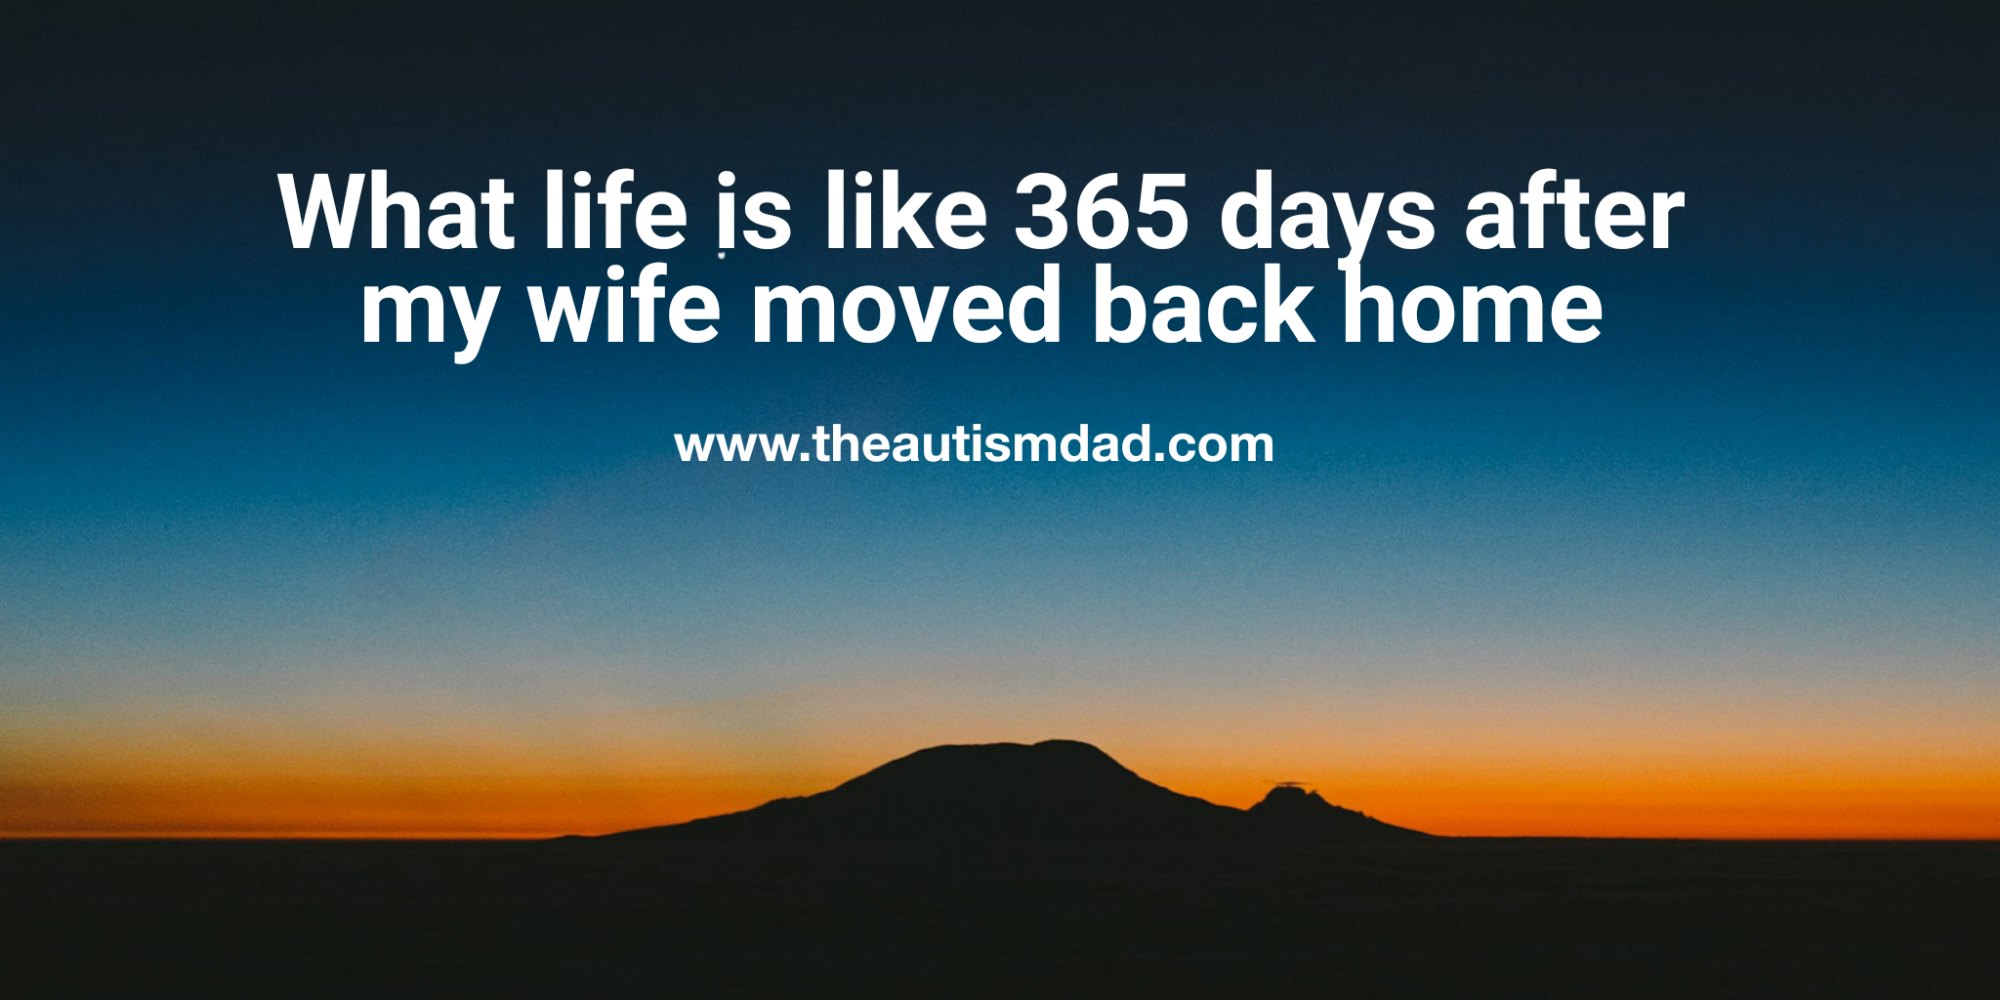 What life is like 365 days after my wife moved back home